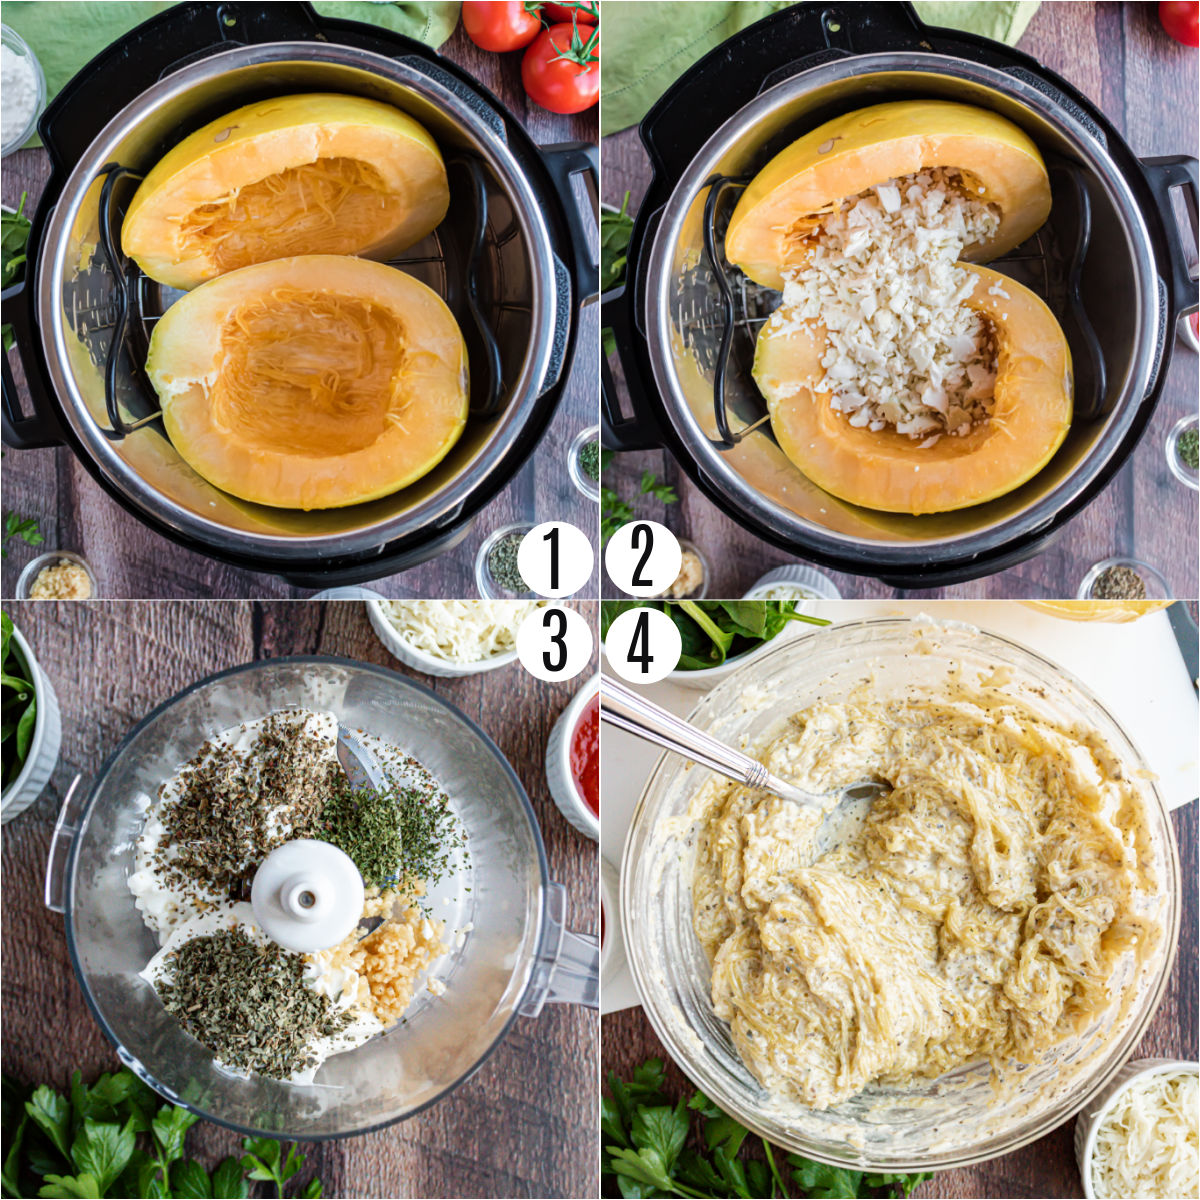 Step by step photos showing how to cook squash in the instant pot.